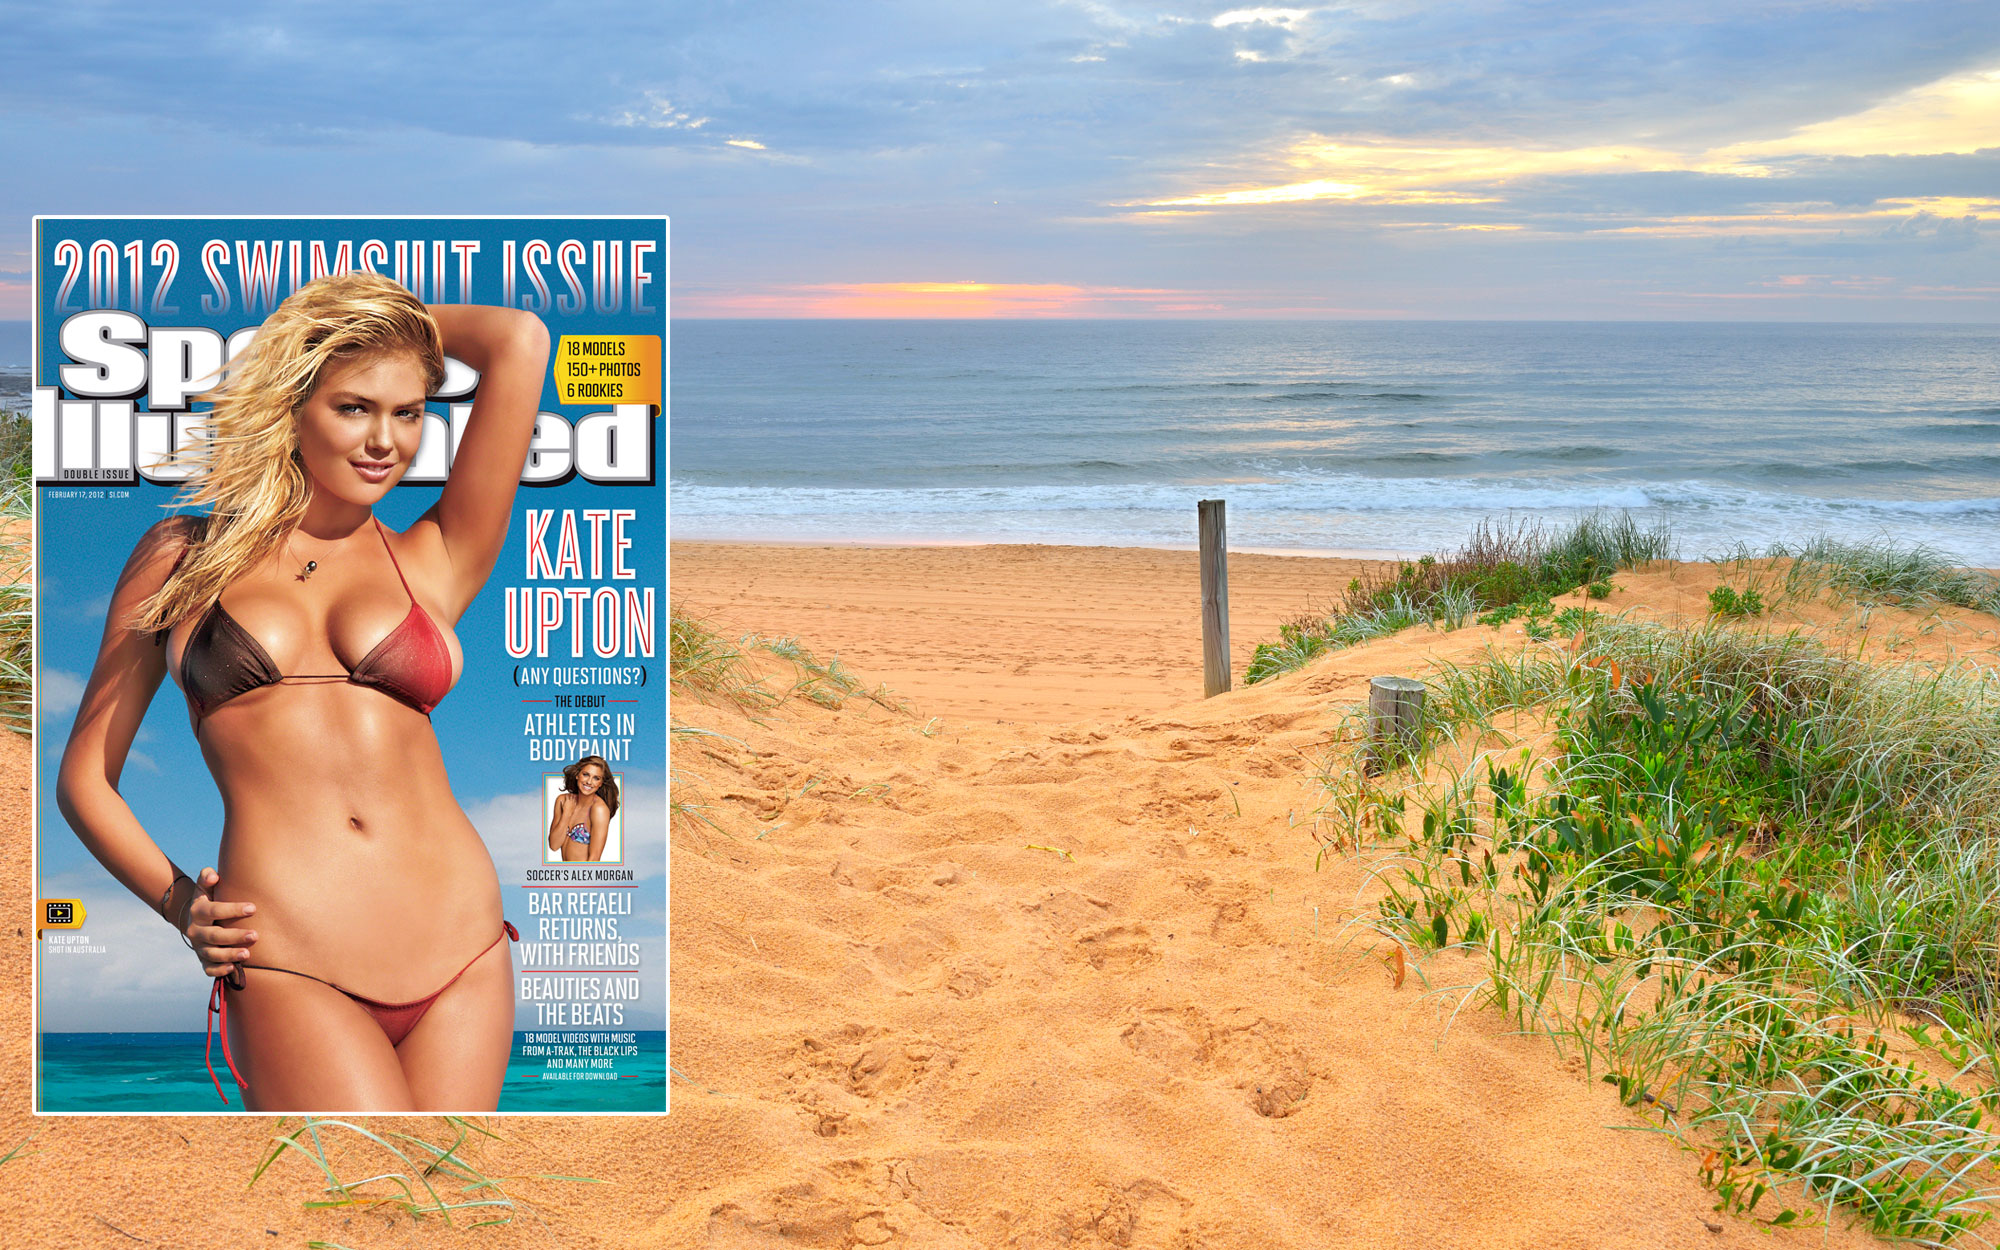 SI Swimsuit 2012: North Narrabeen Beach, New South Wales, Australia